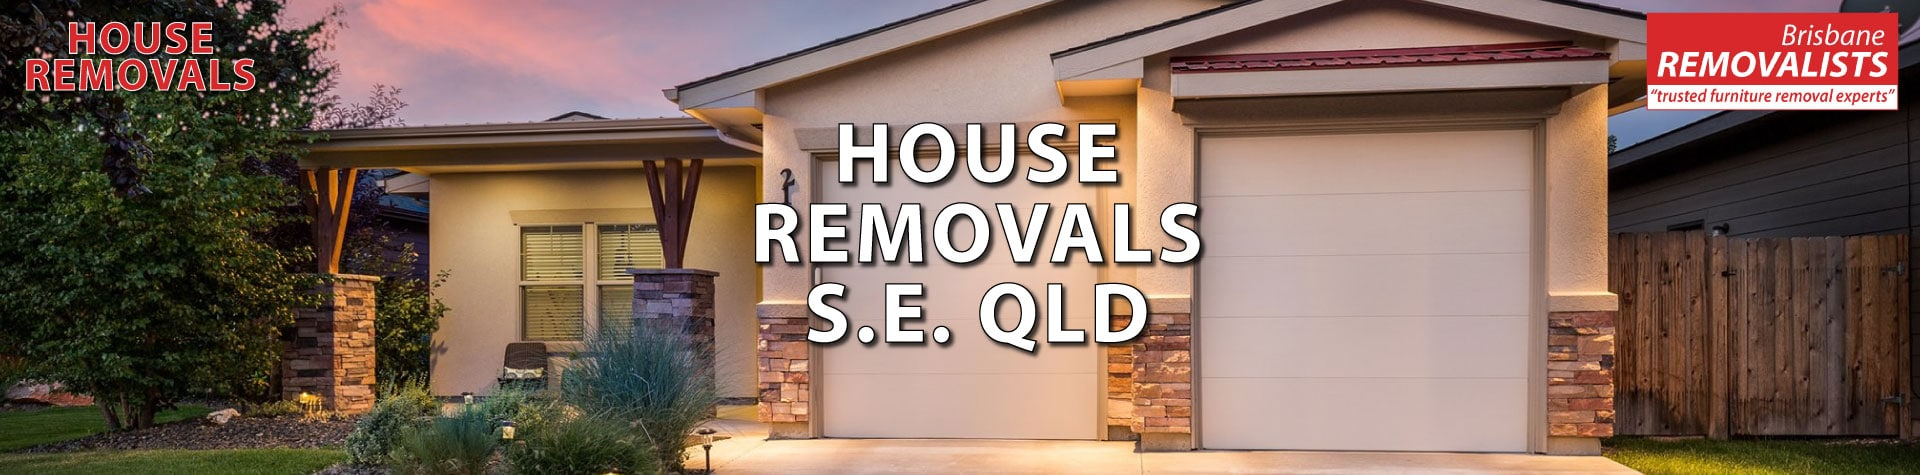 Home Removals house removals office relocation in South East Queensland feature image